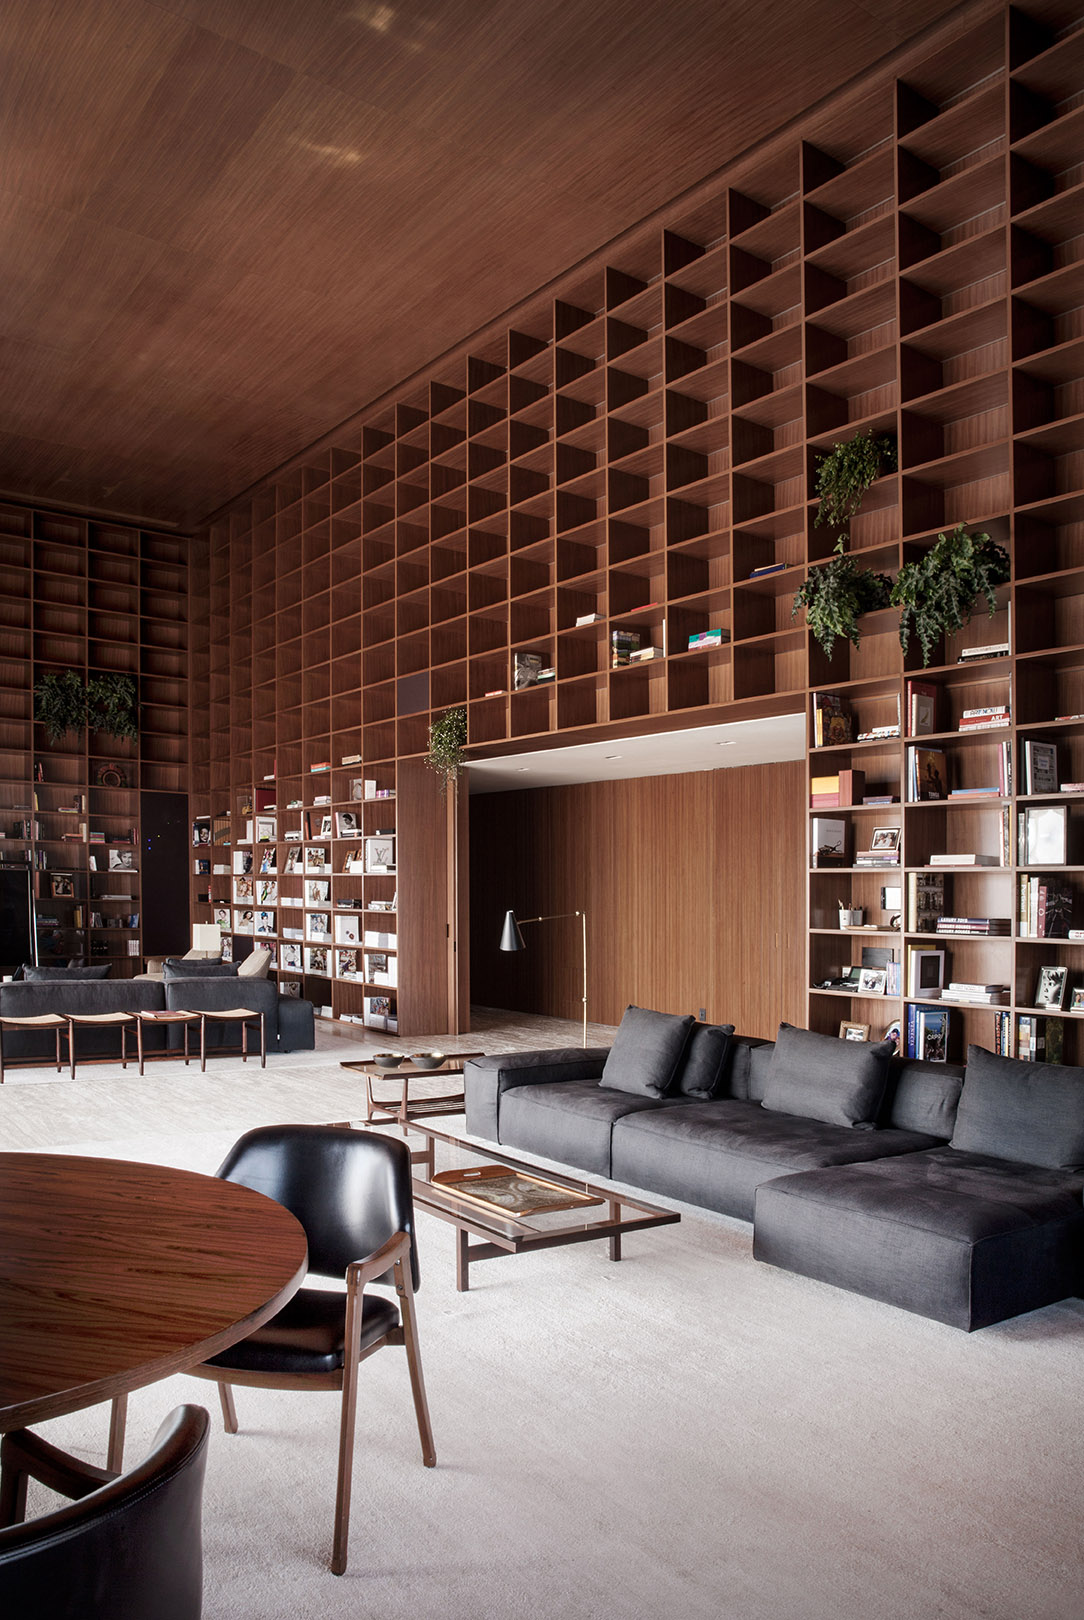 Library. Sofa NeoWall – Piero Lissoni, Coffee table Joaquim Tenreiro